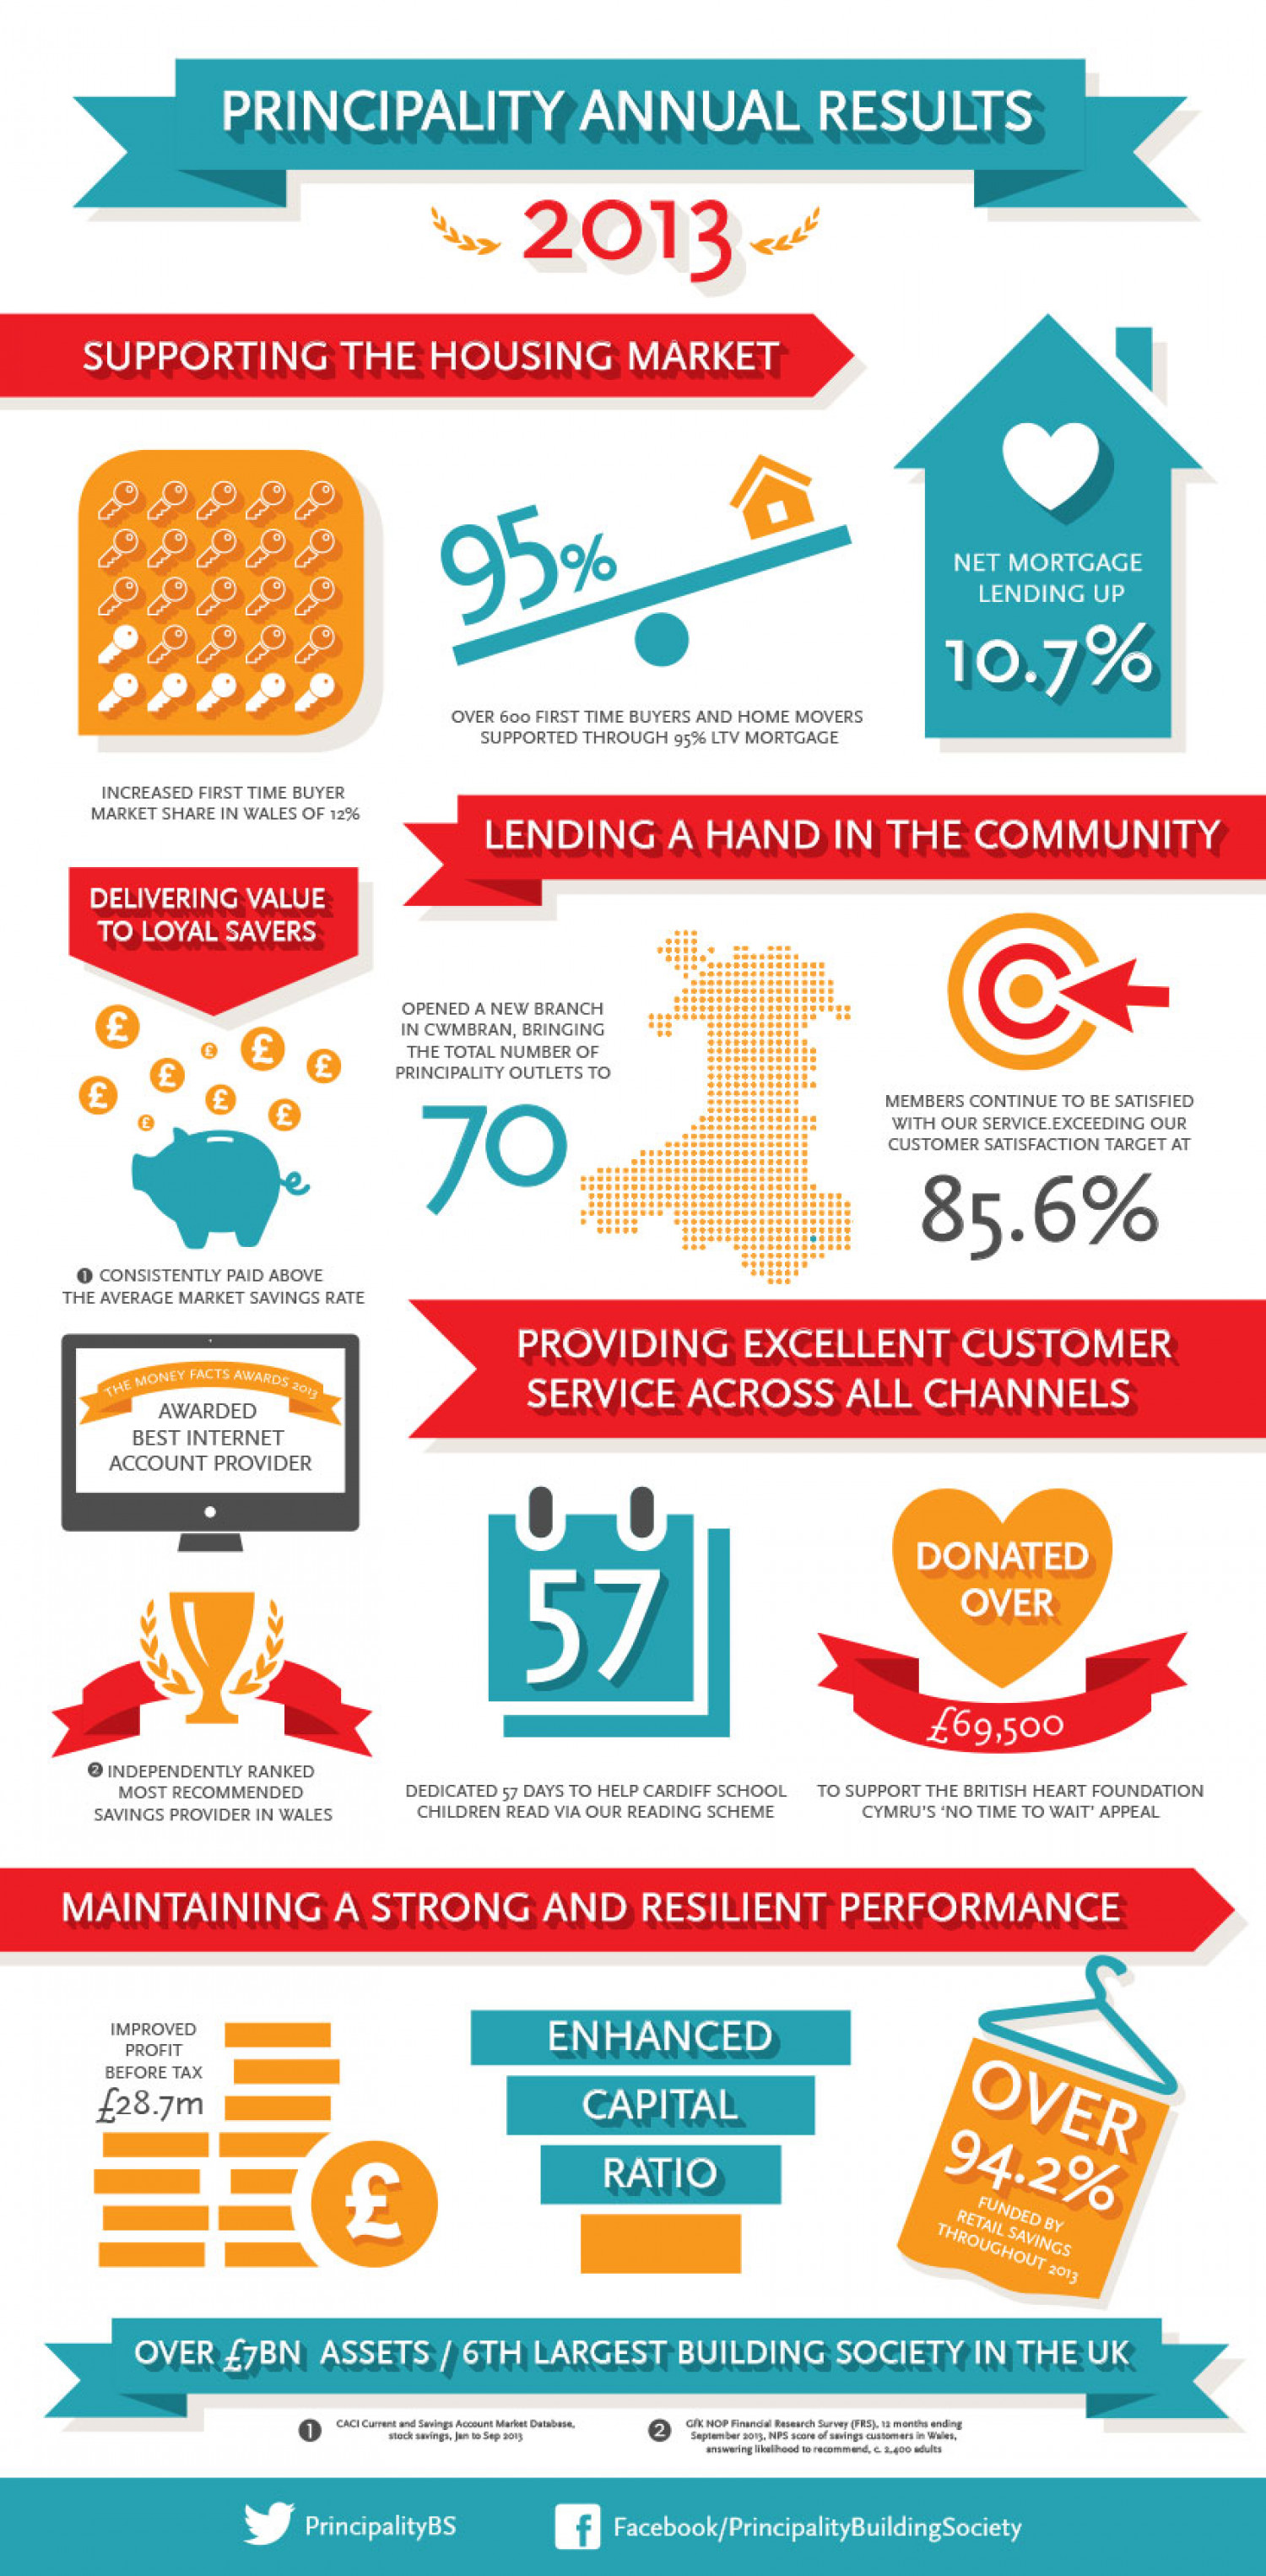 Principality Annual Results 2013 Infographic